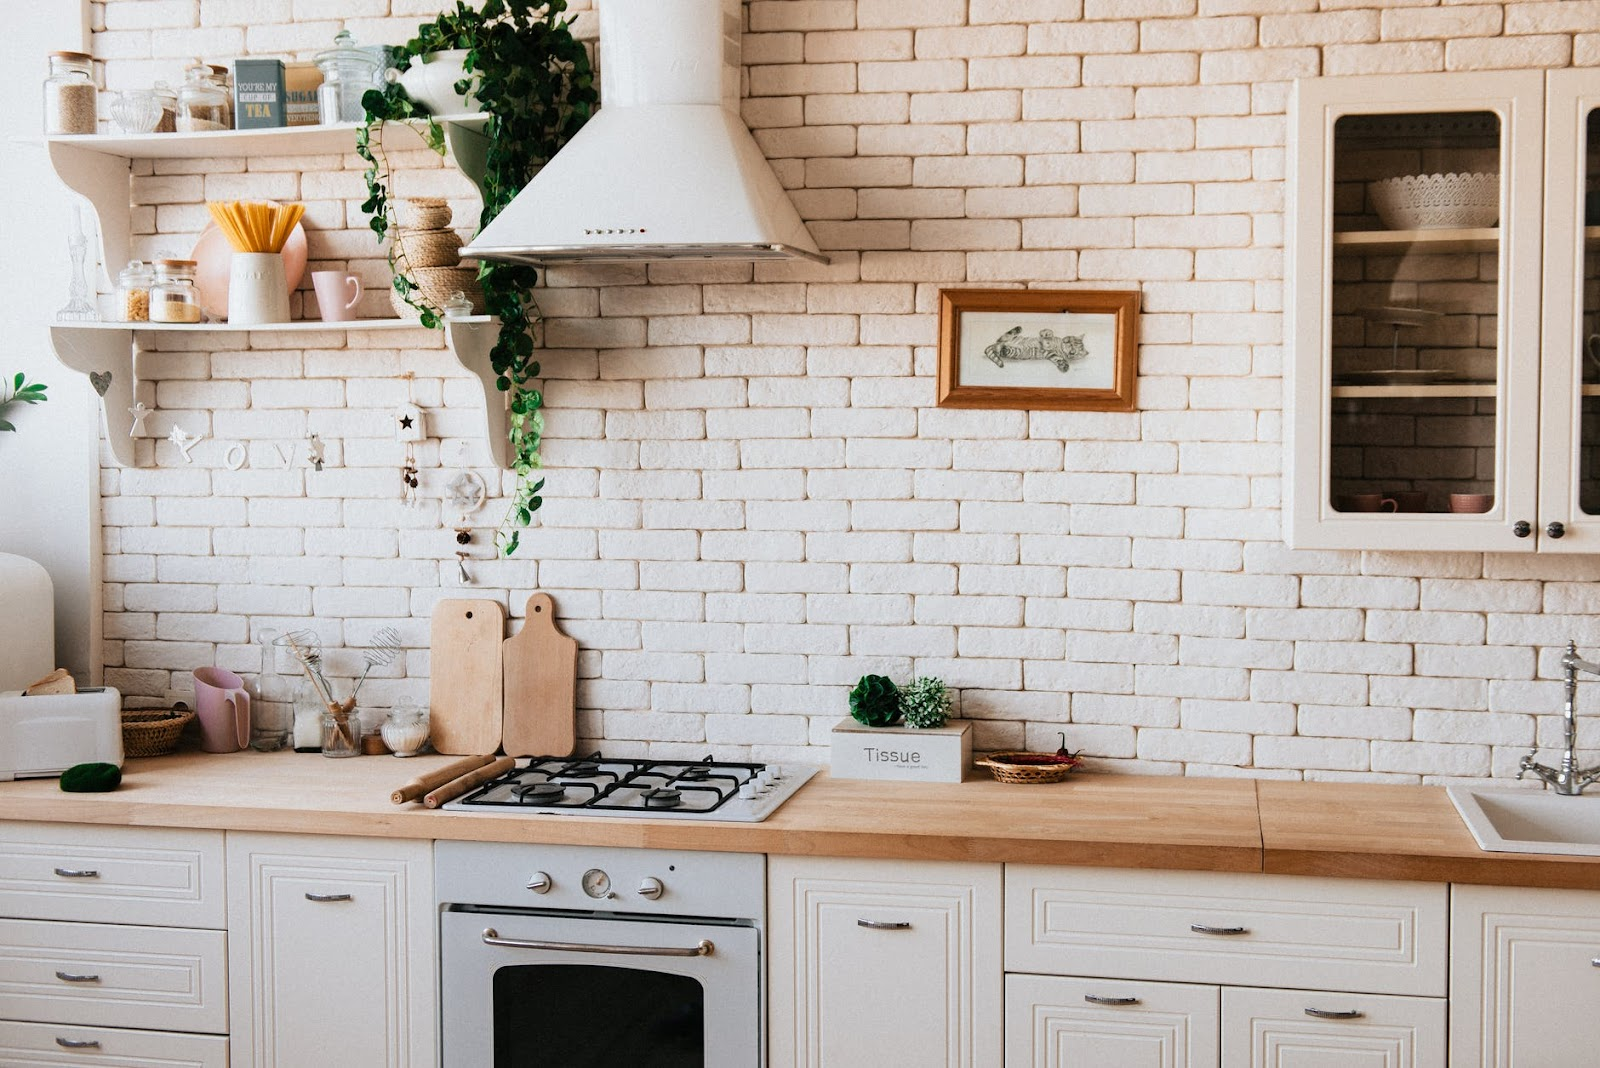 child-proofing your home  - kitchen